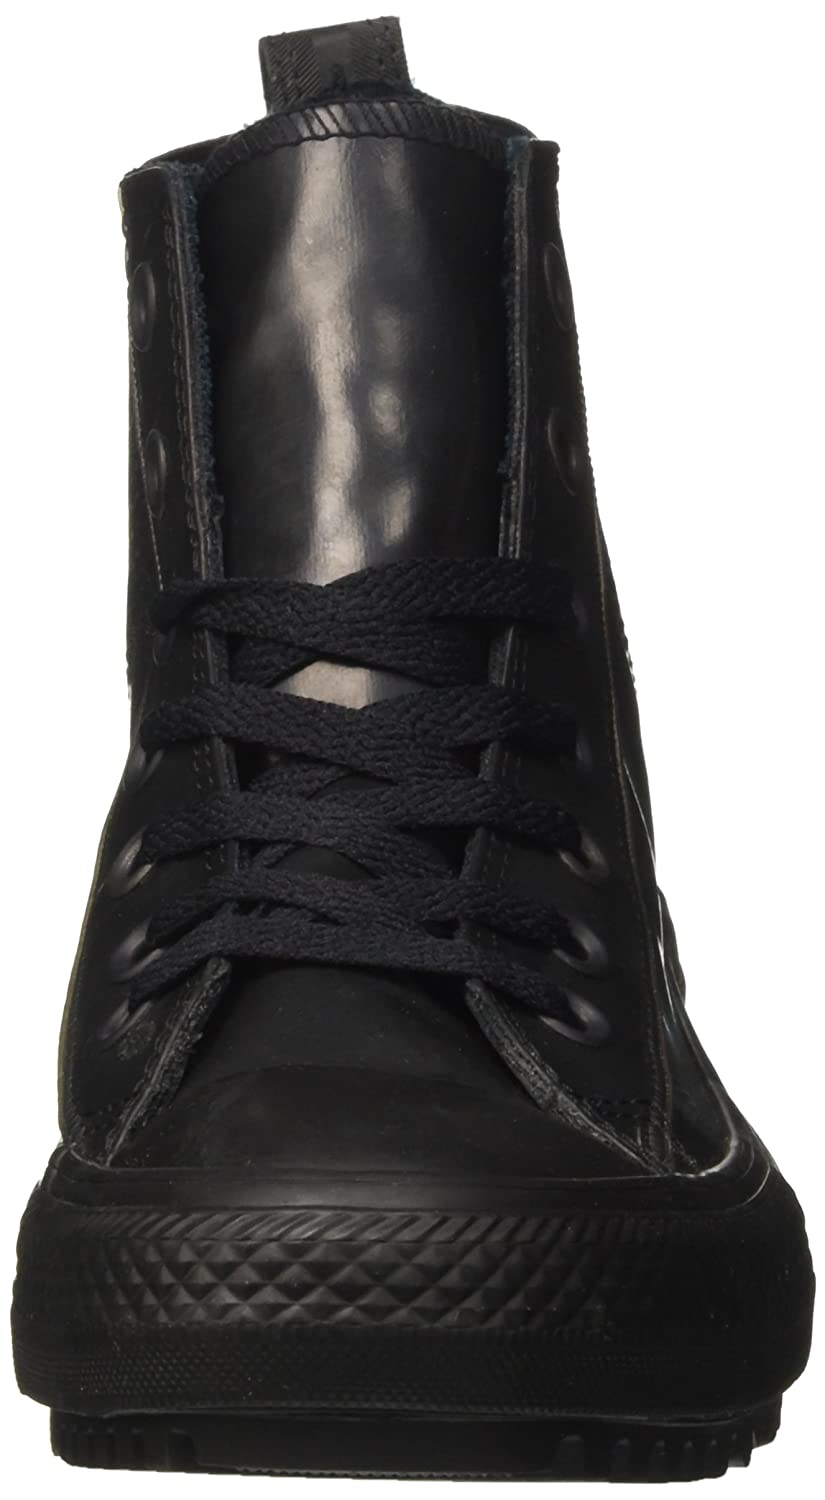 Converse Women's Chuck Taylor Boot All Star Rubber Chelsee Boot Taylor B0193WYTZW 7.5 B(M) US|Black b06f26